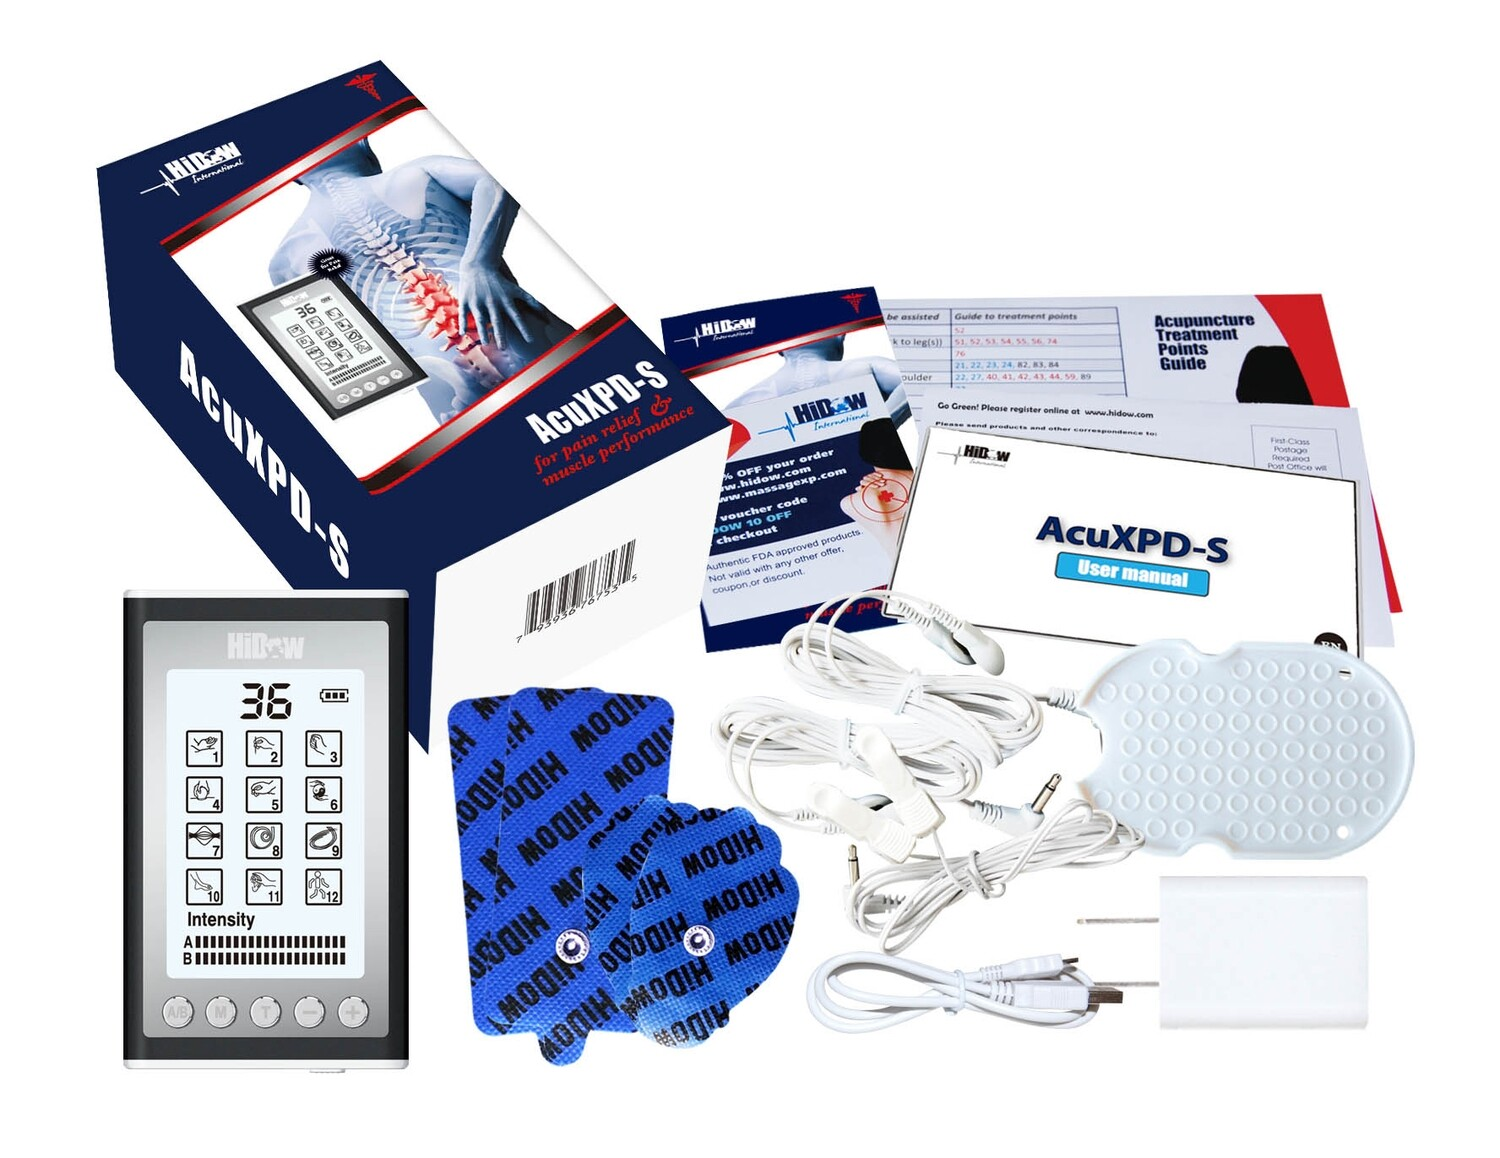 AcuXPD-S Combo with Neck Wrap, AcuBelt, AcuWrist & Perfect Conductor Spray